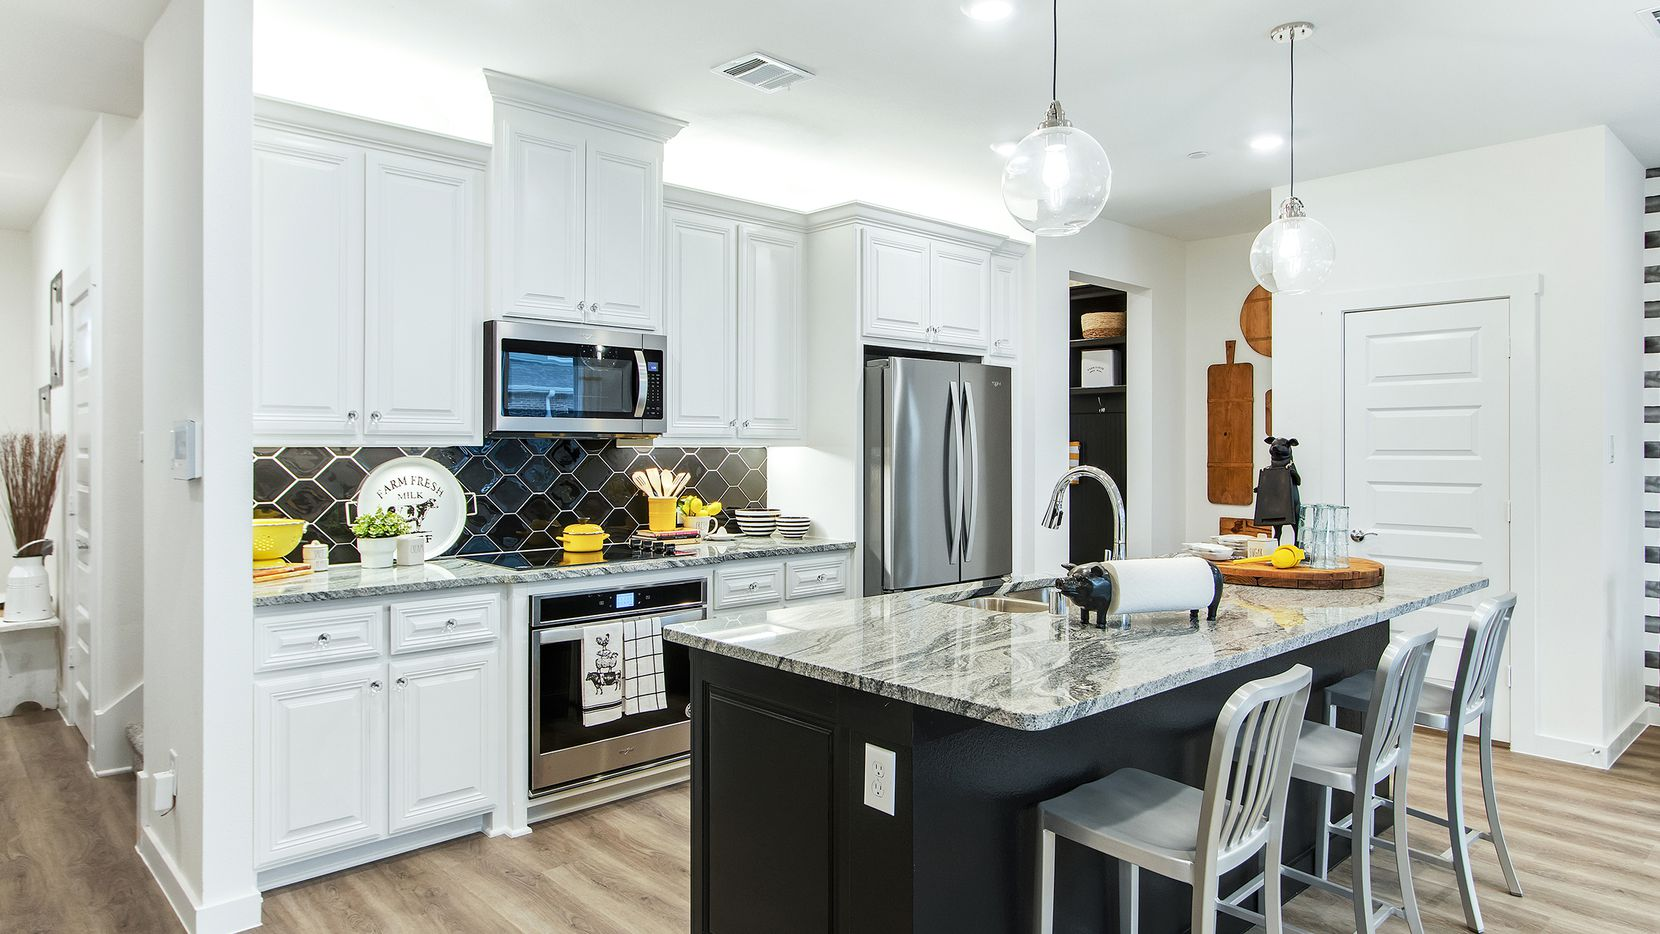 Two- and three-bedroom luxury townhomes are ready for move-in at Woodbridge Townhomes, a new Grenadier Homes community.